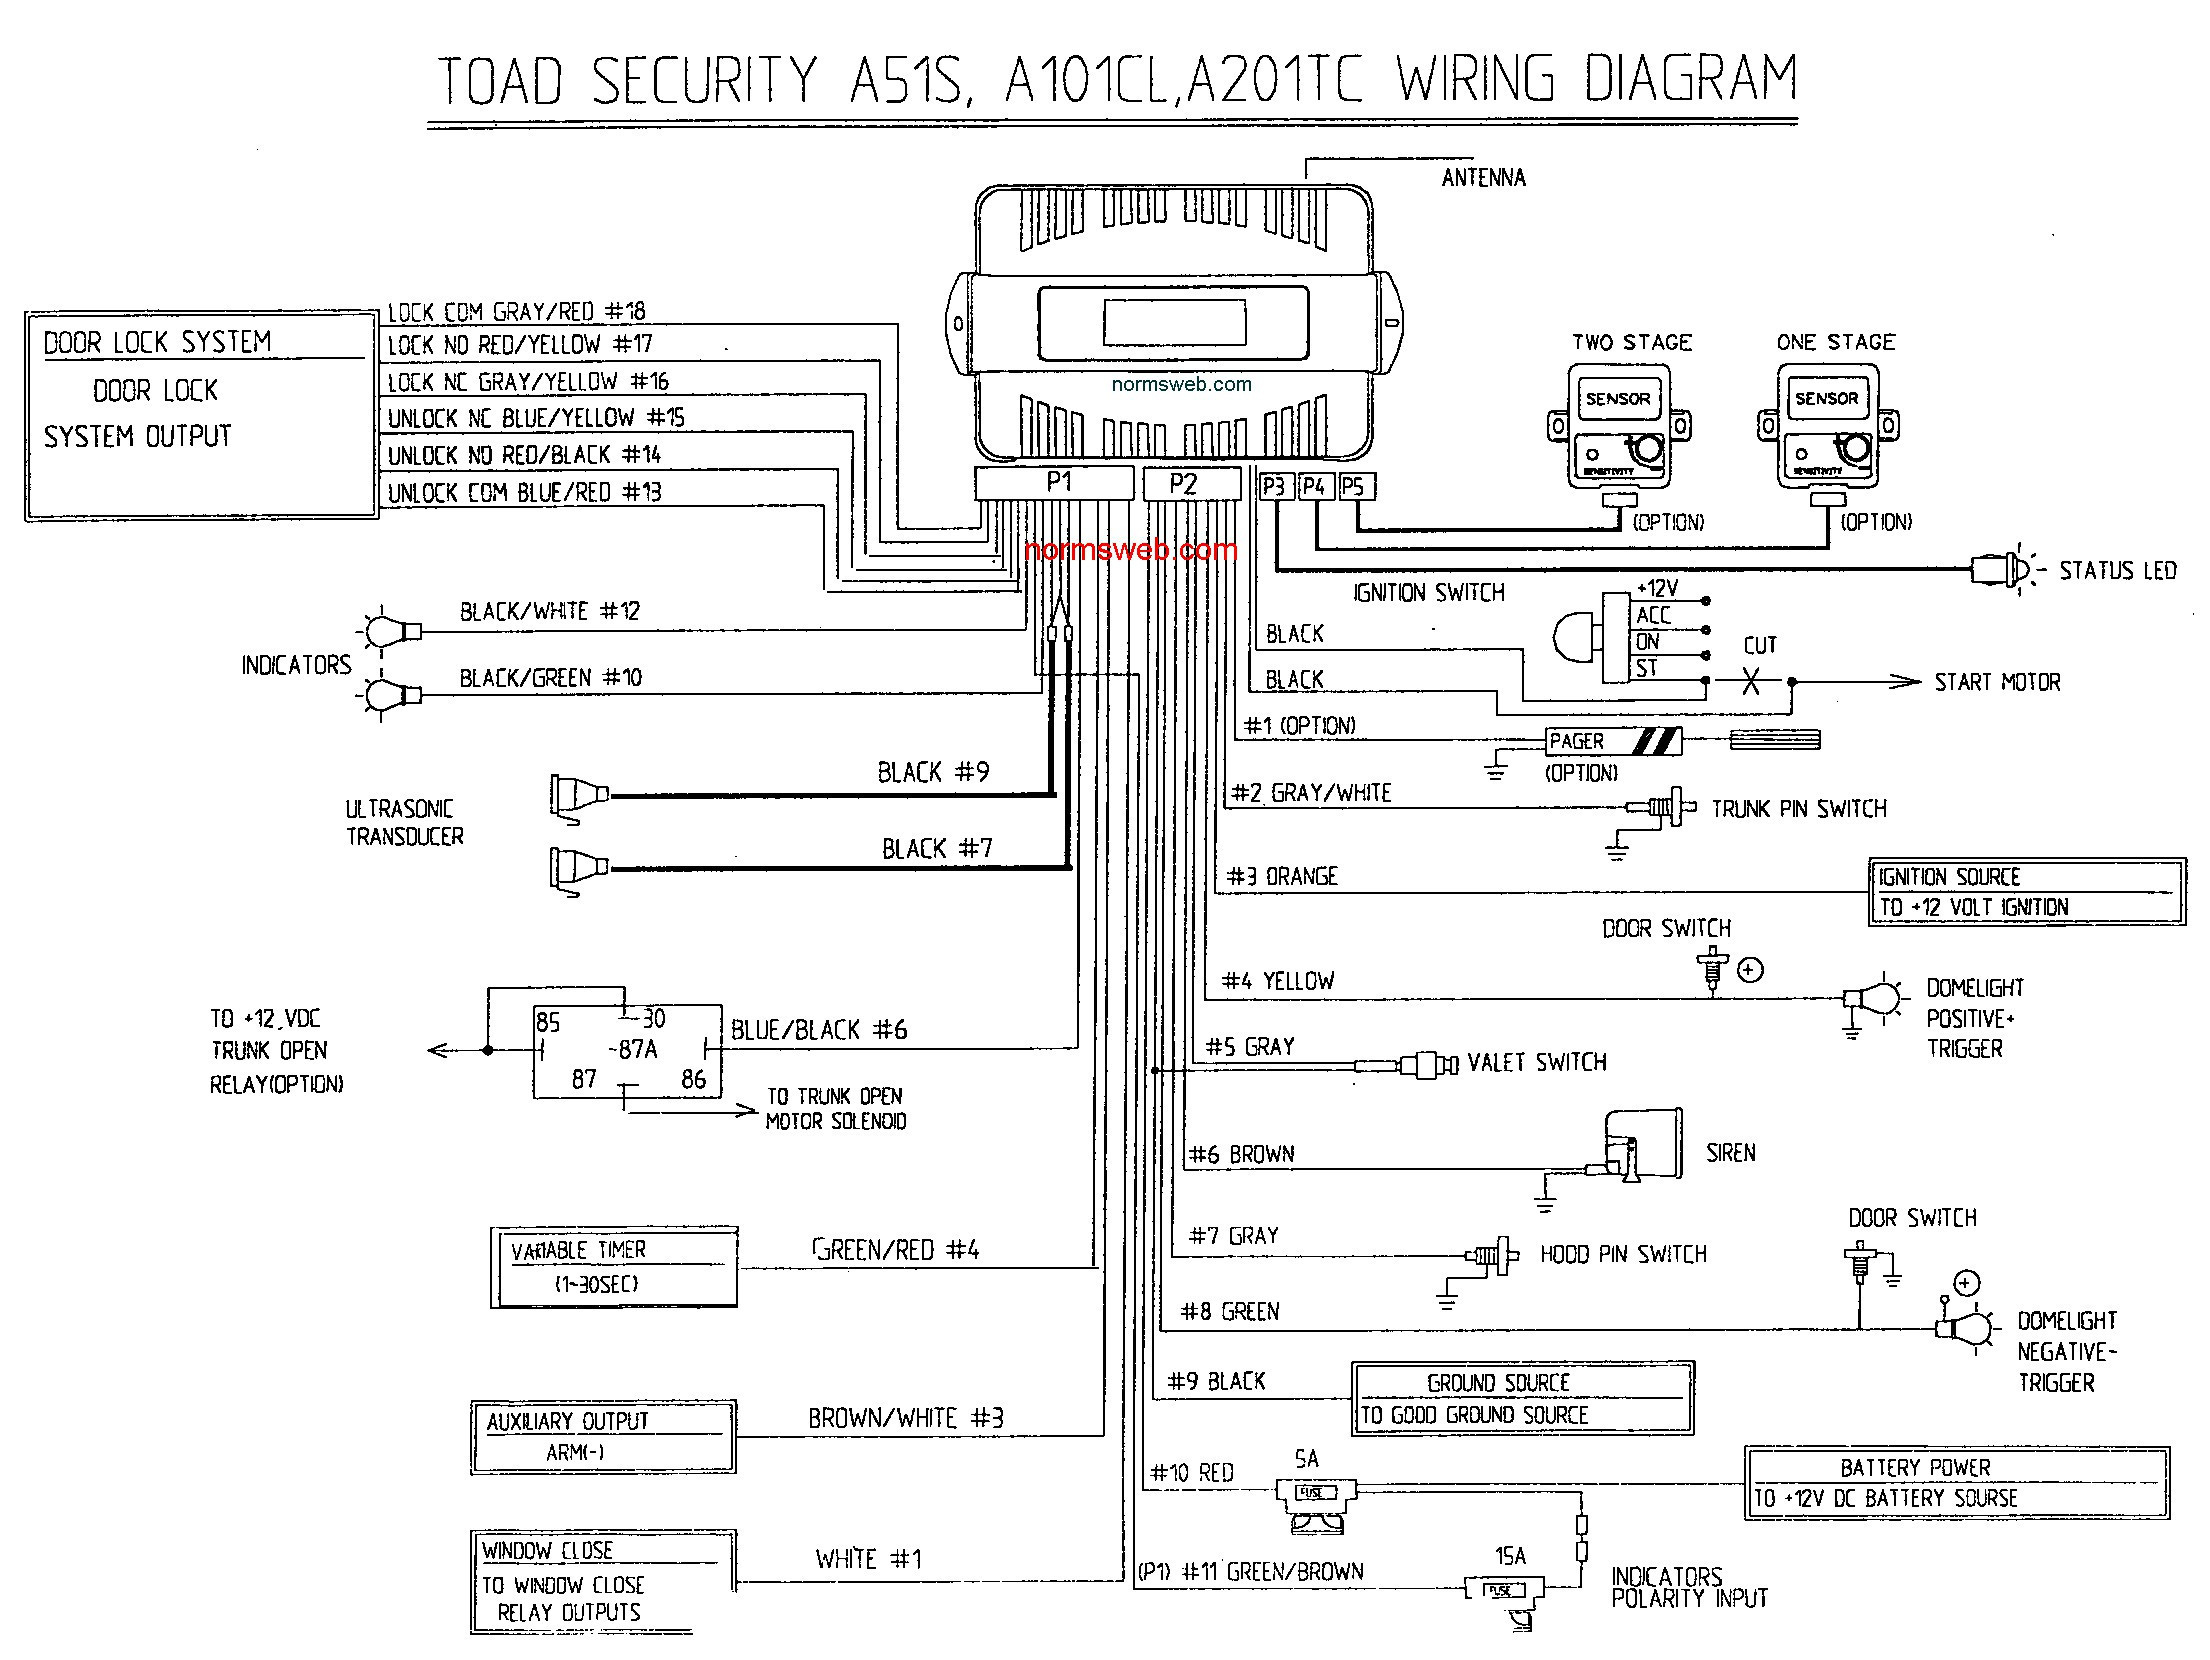 viper 1002 wiring diagram viper 4105v wiring diagram